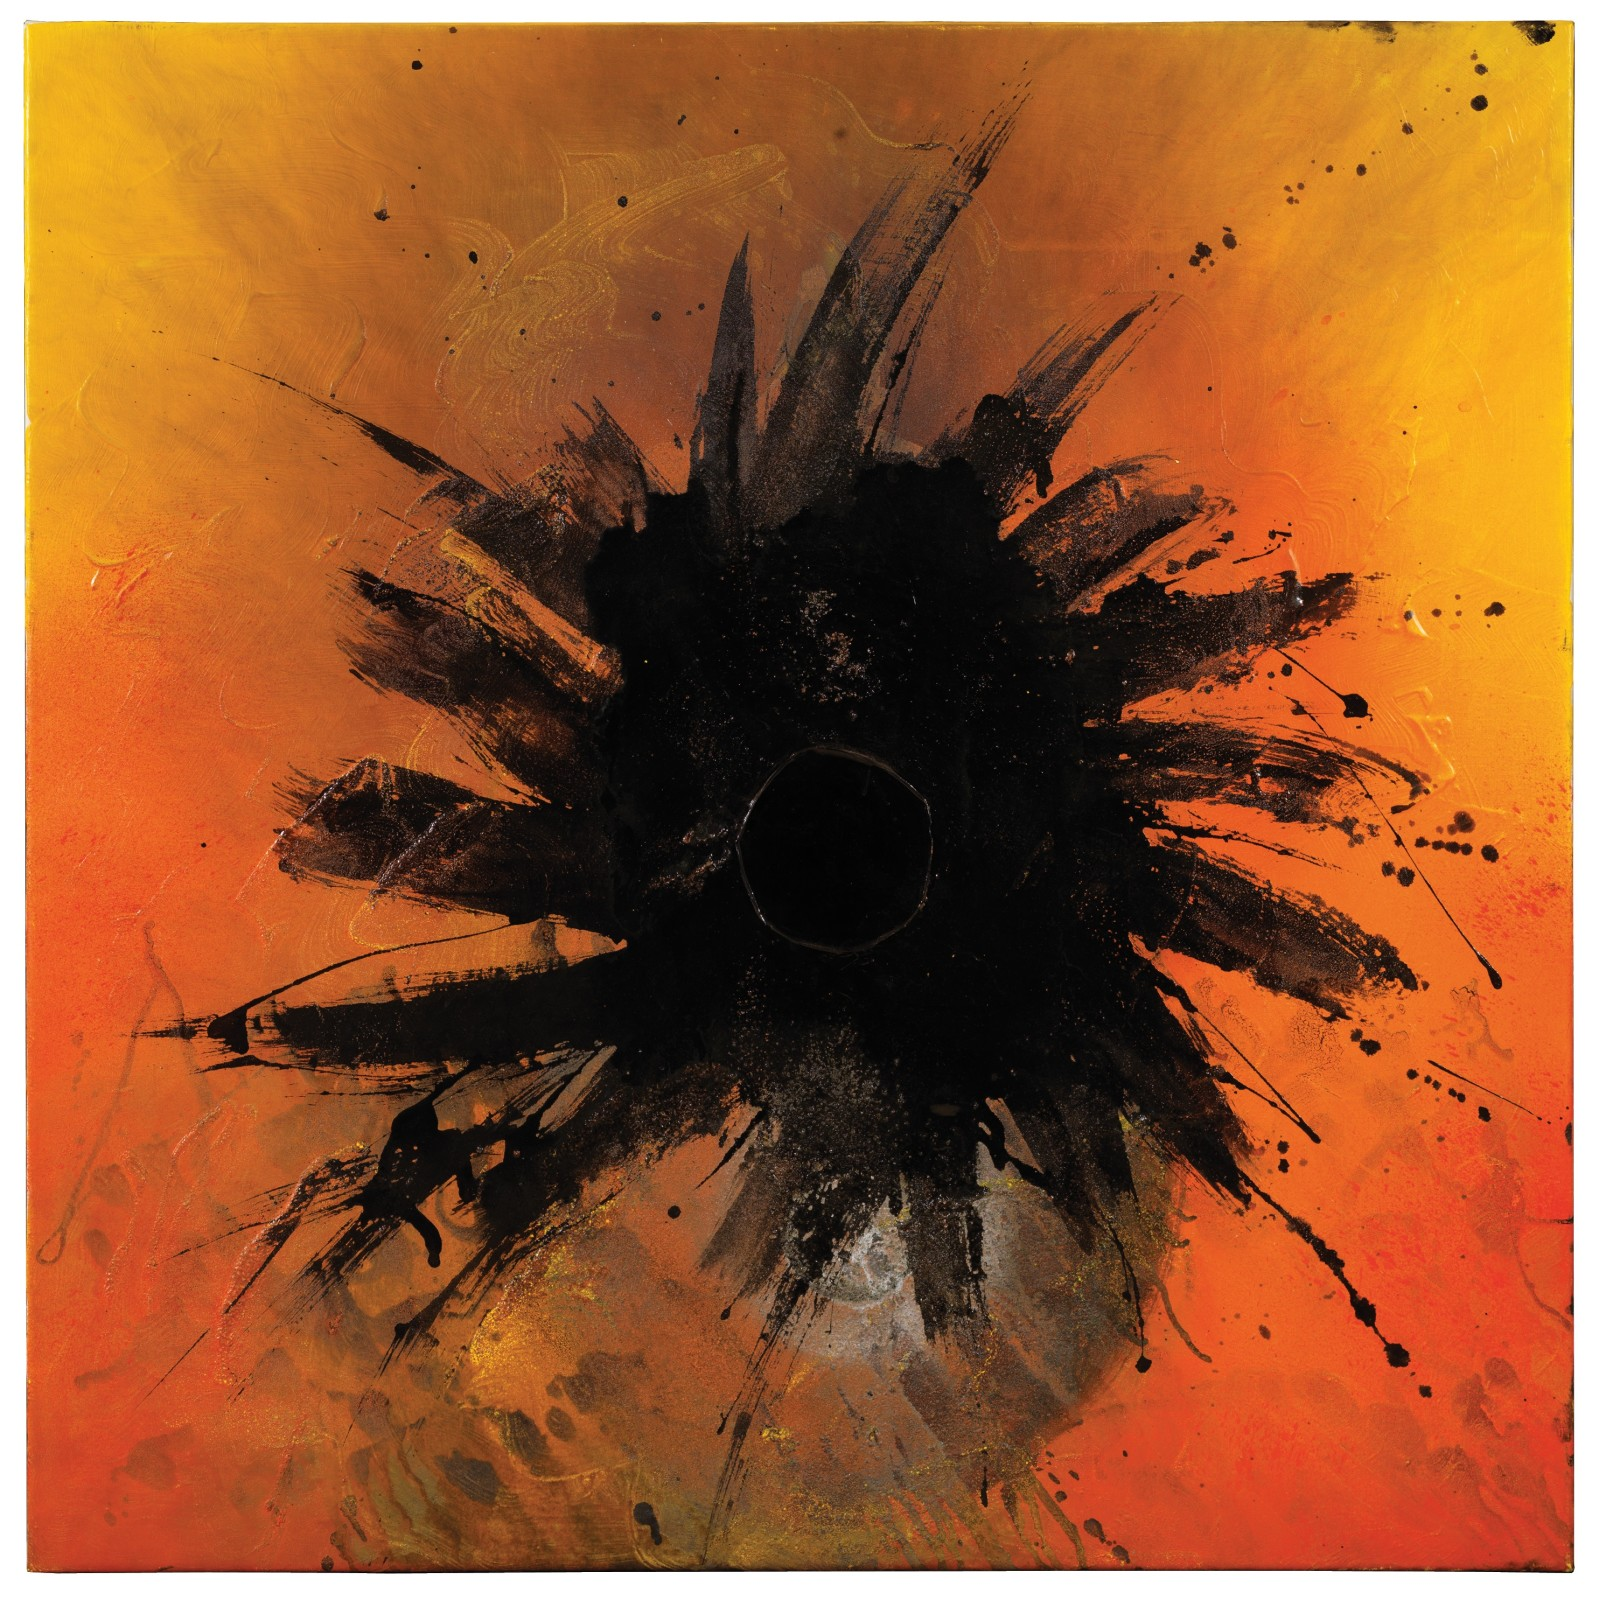 """<span class=""""link fancybox-details-link""""><a href=""""/artists/47-otto-piene/works/9688/"""">View Detail Page</a></span><div class=""""artist""""><span class=""""artist""""><strong>OTTO PIENE</strong></span></div><div class=""""title""""><em>Brush Star</em>, 1986/7</div><div class=""""medium"""">Oil and fire on canvas<br /> </div><div class=""""dimensions"""">100 x 100 cm<br /> 39 3/8 x 39 3/8 inches</div>"""